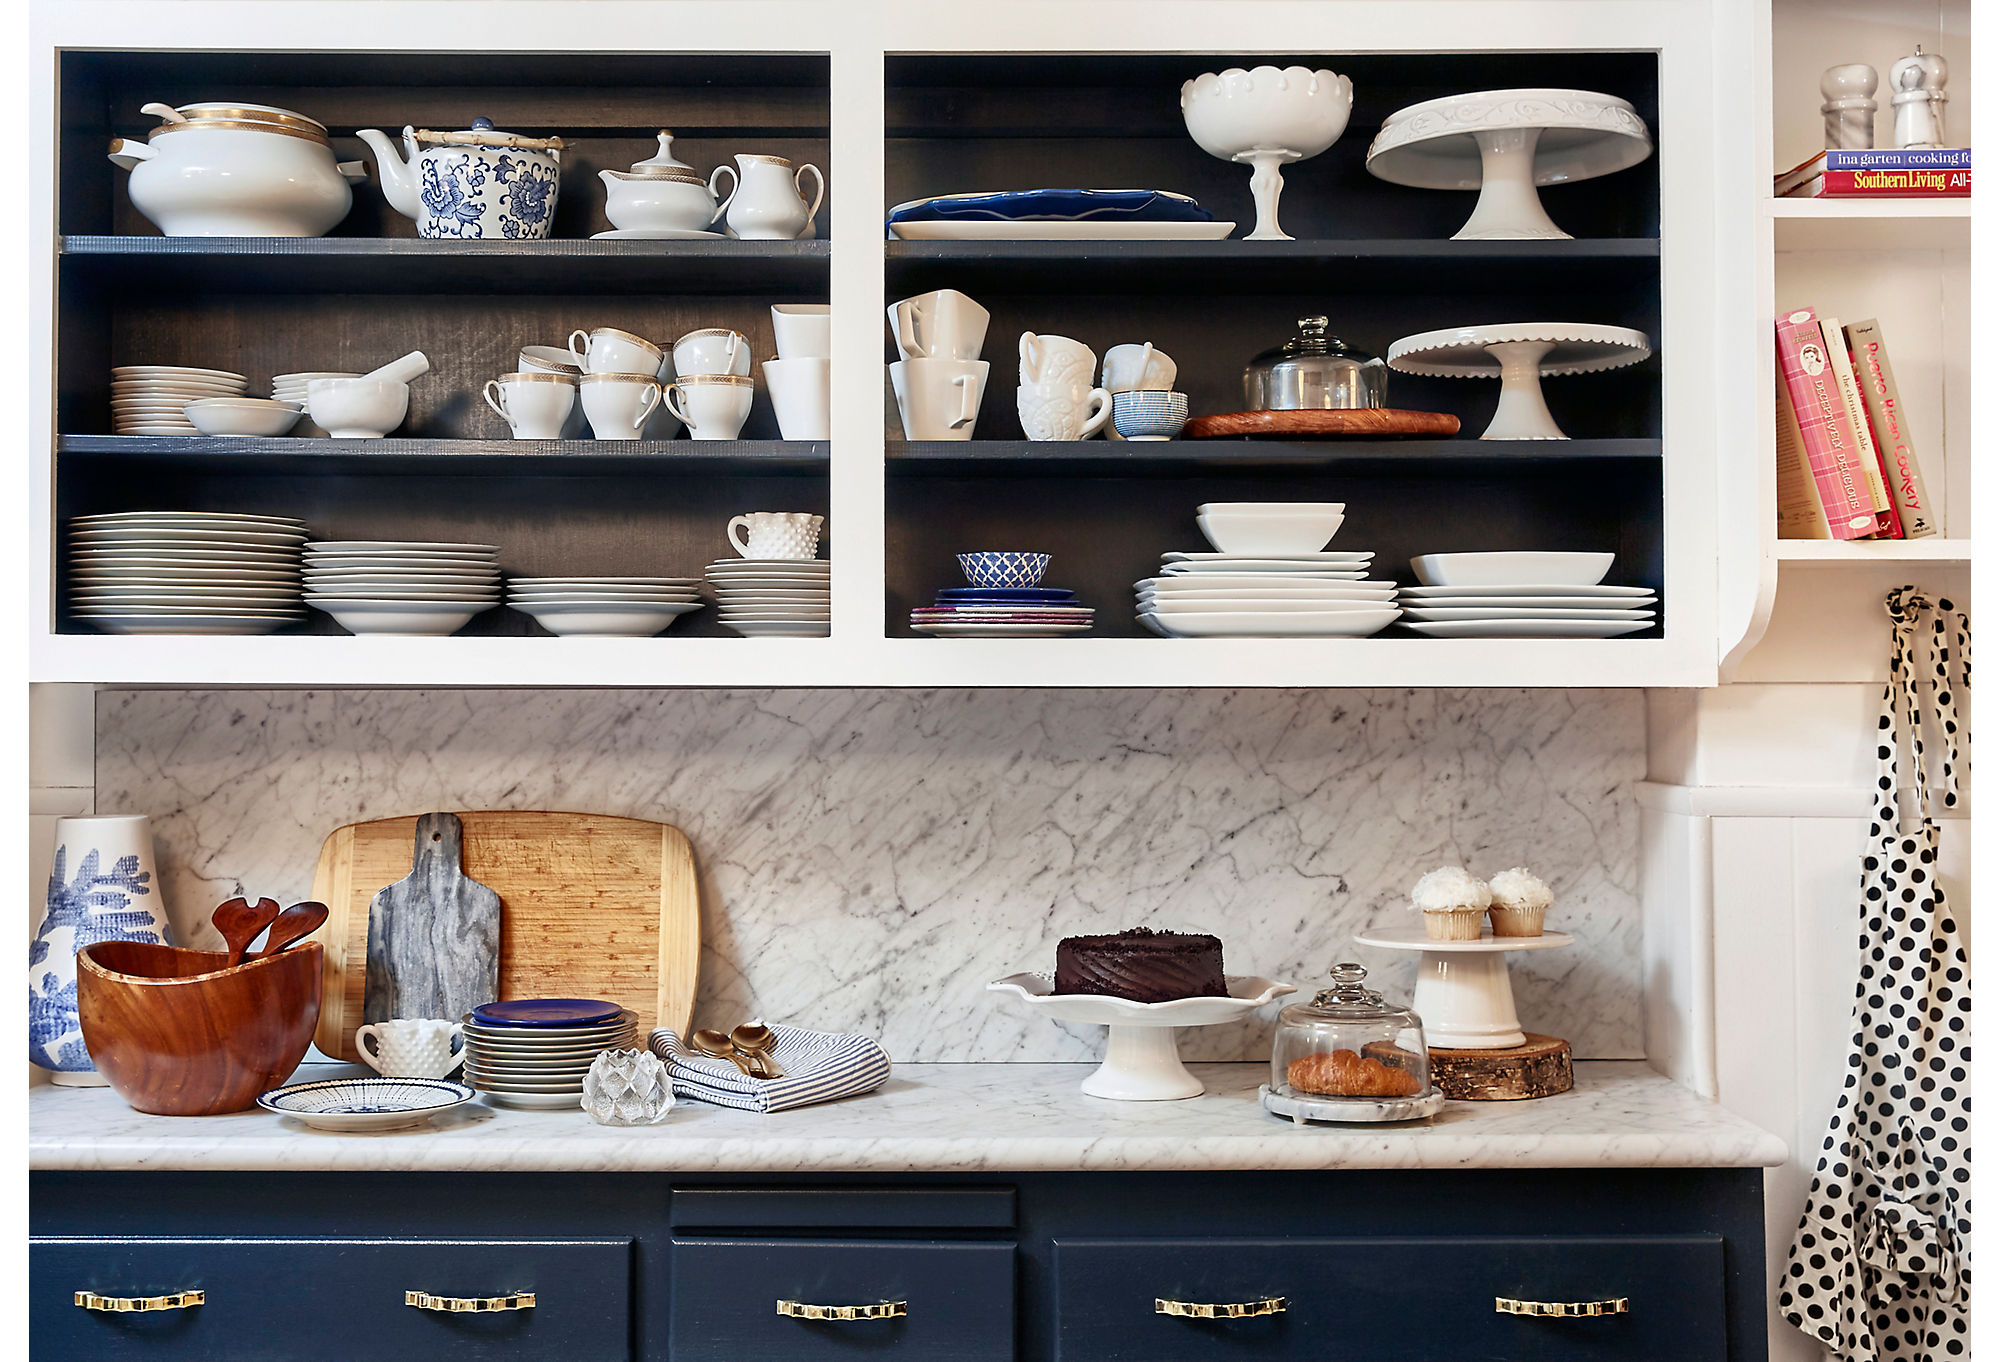 Virginia went for a classic palette of blue and white in the kitchen. She used open shelving to display her sets of tableware.